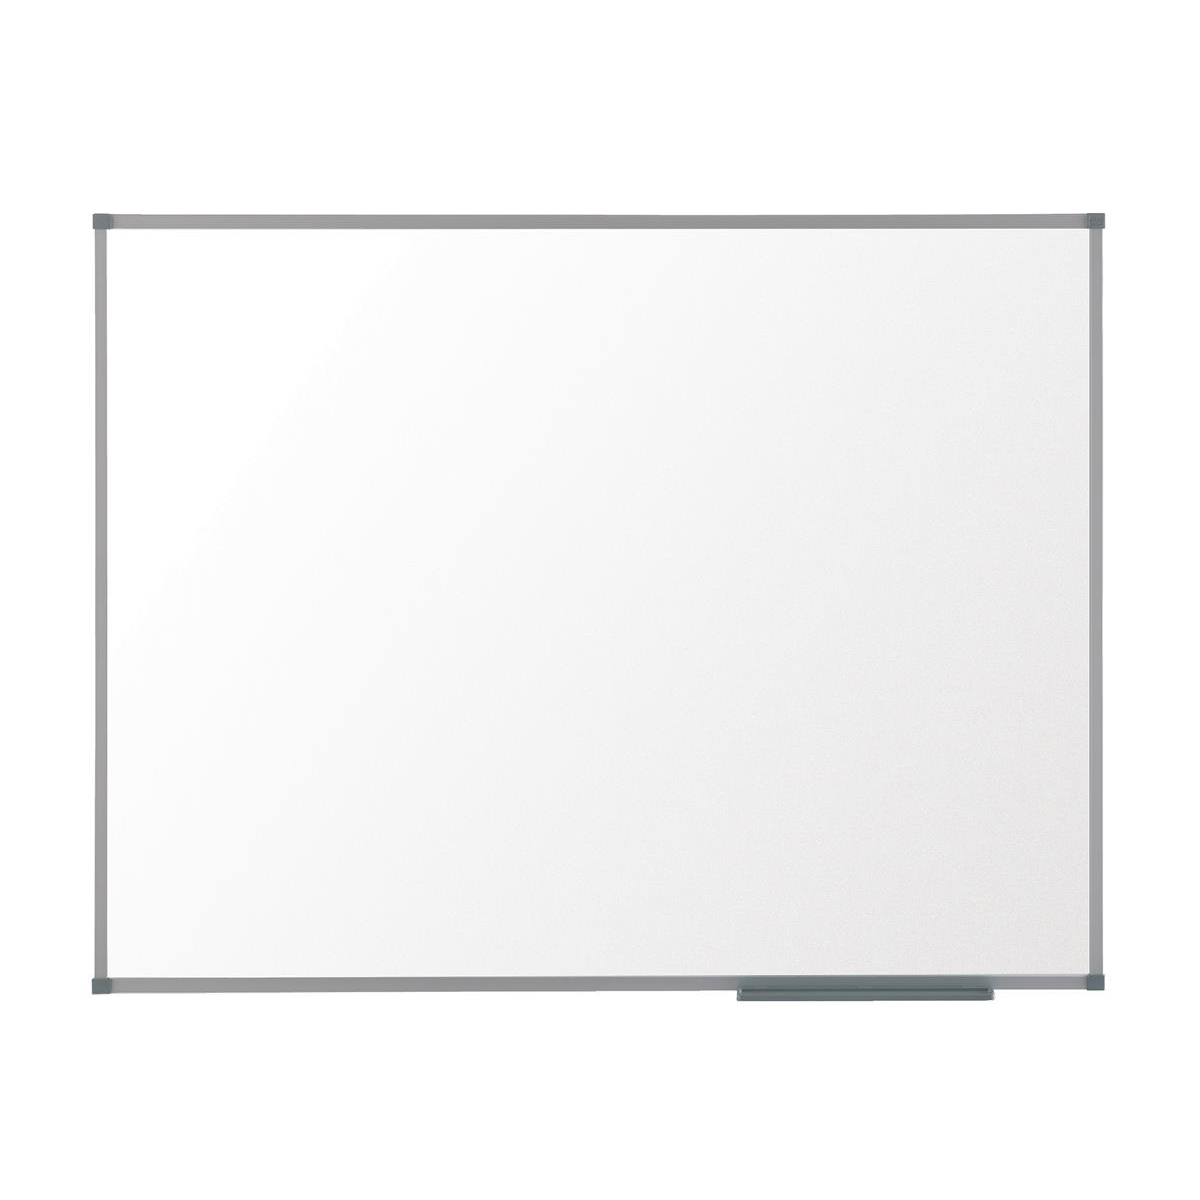 Nobo Basic Steel Whiteboard Magnetic Fixings Included W600xH450mm White/Silver Ref 1905209